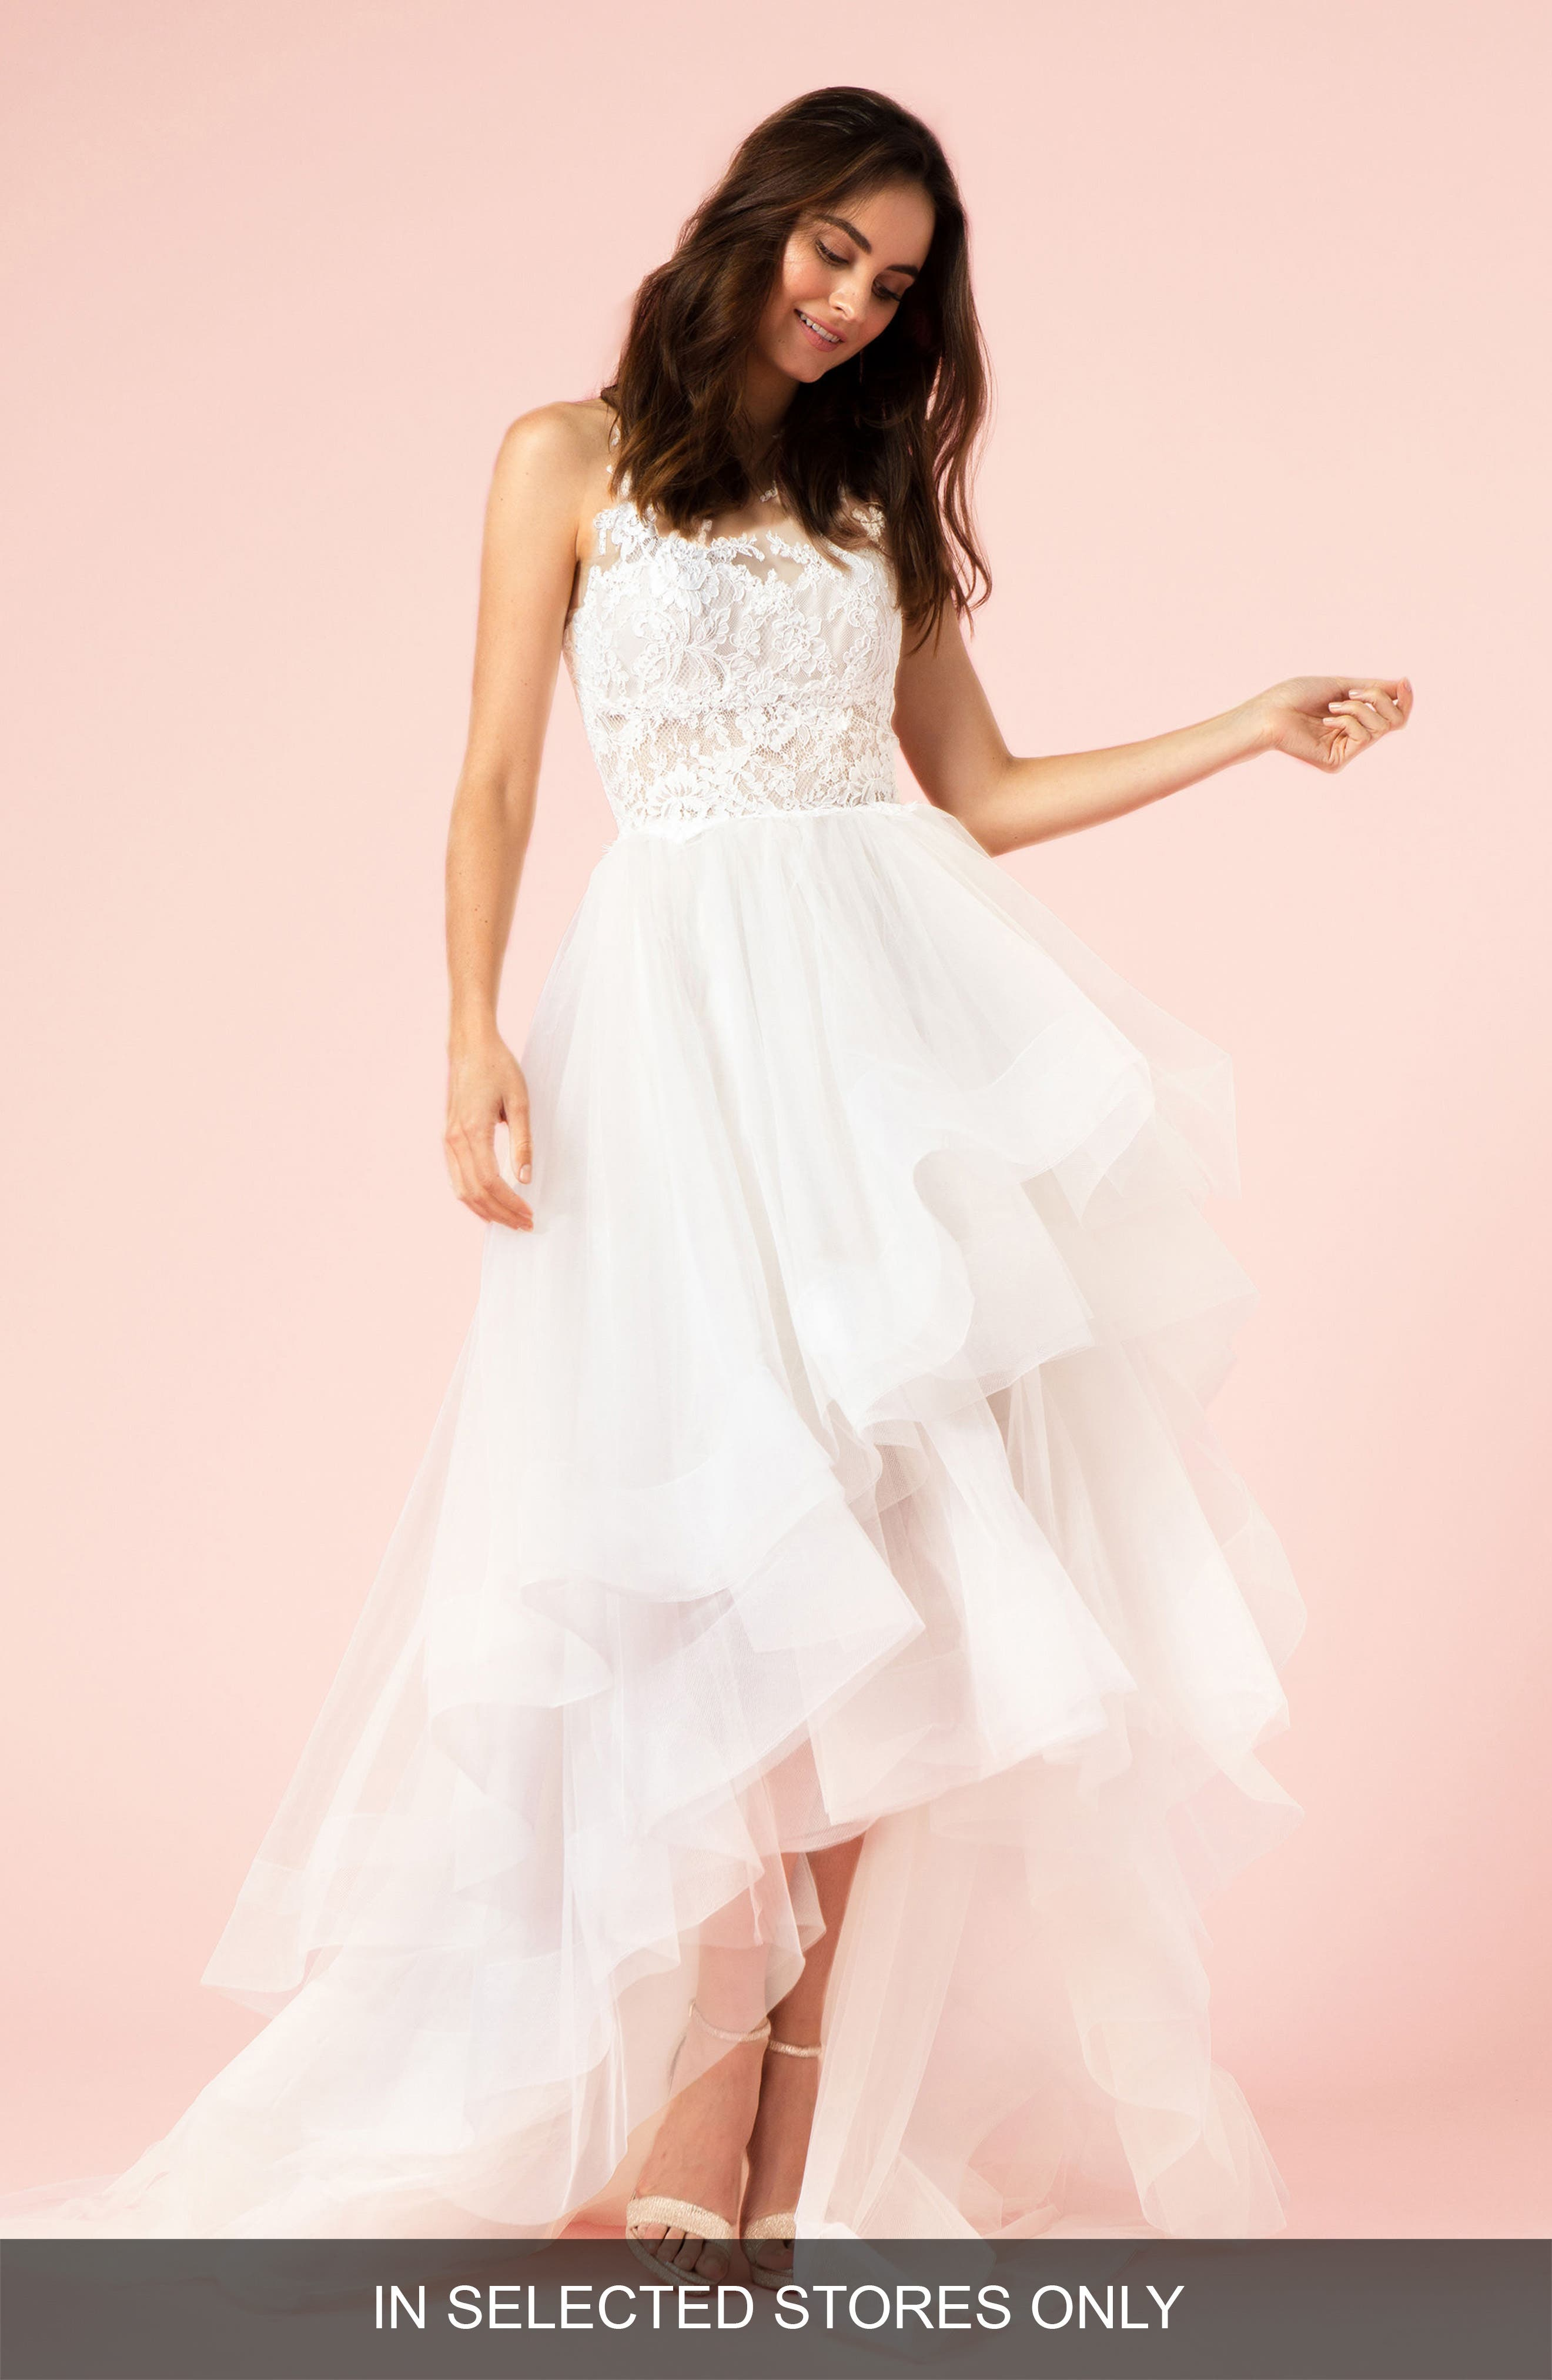 Lace & Organza High/Low Halter Gown,                             Main thumbnail 1, color,                             Silk White/ Latte